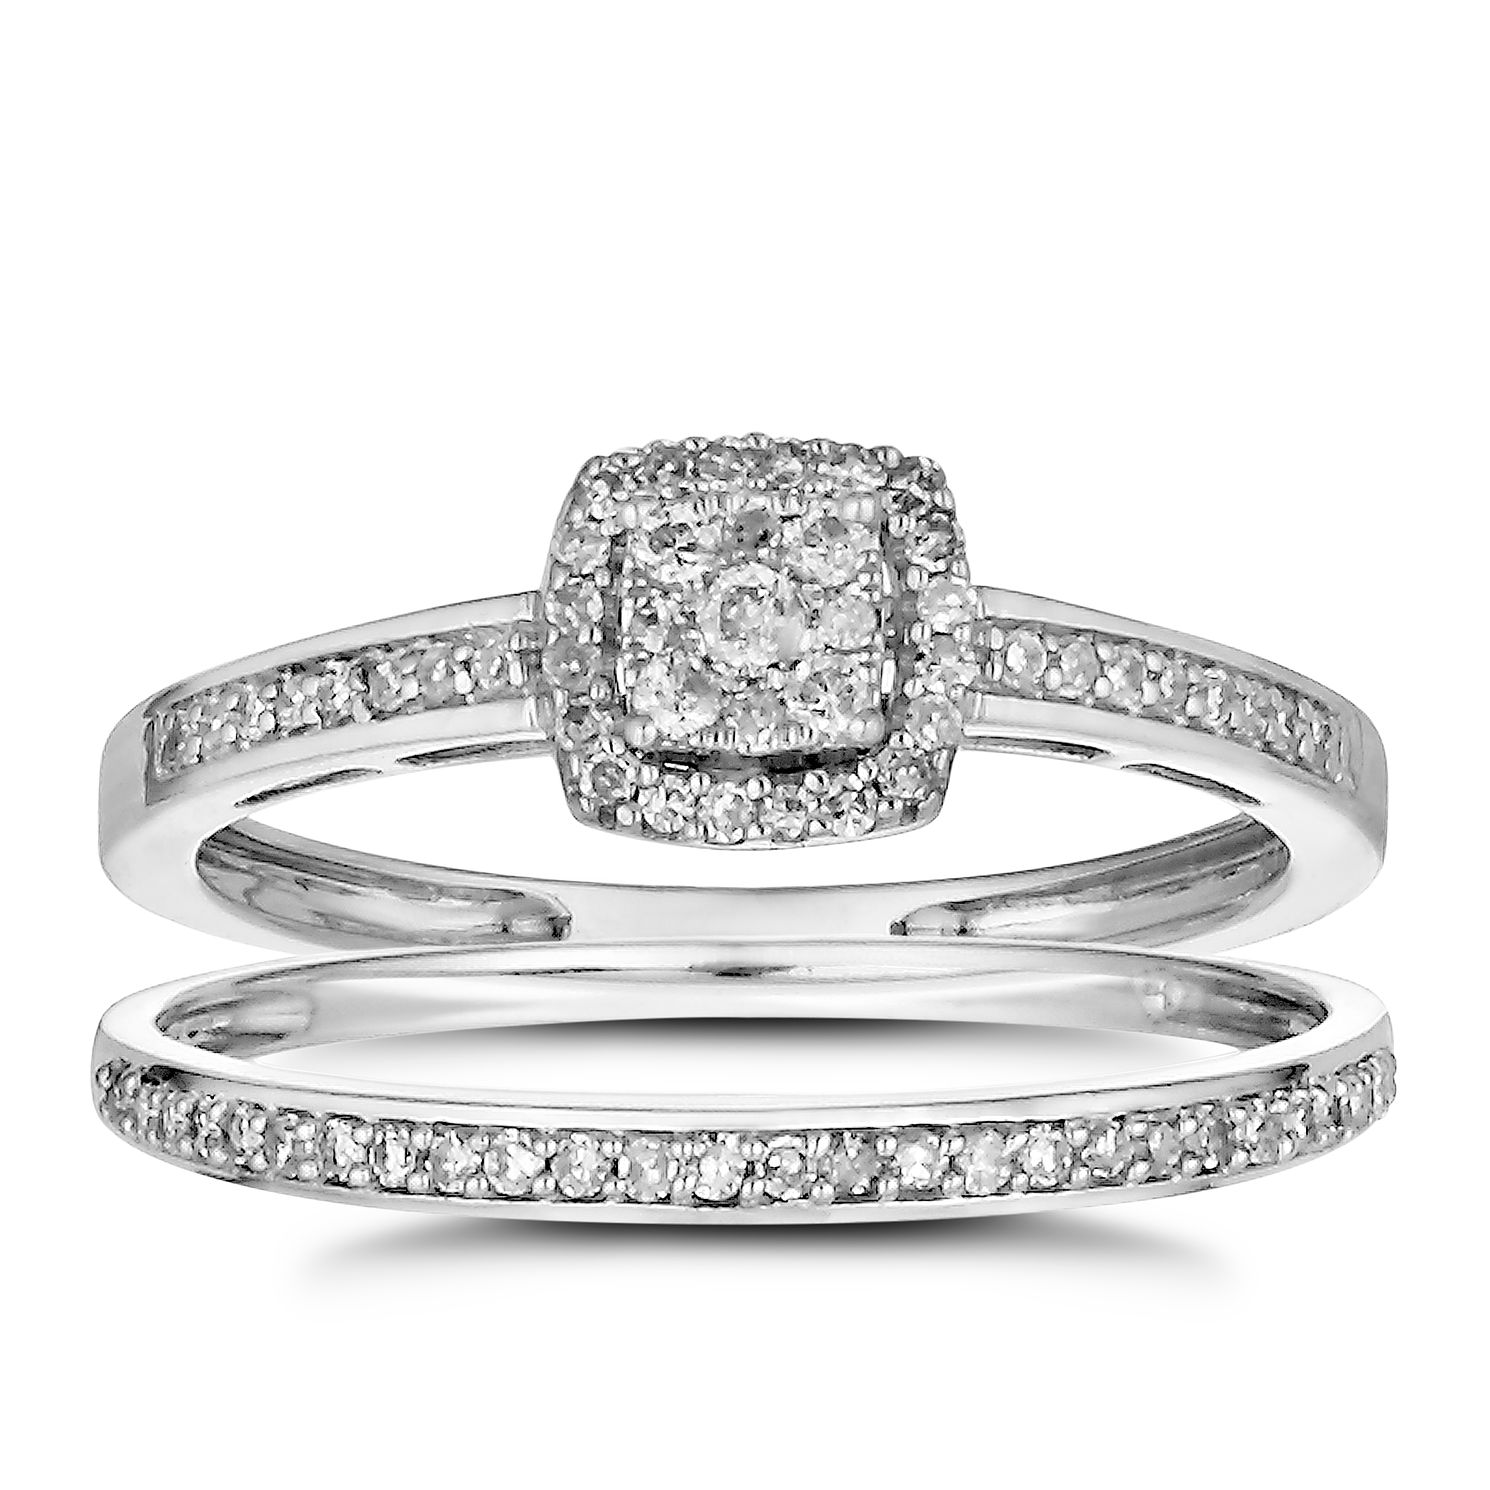 ring pave open jewelry vertical by duquet alternative engagement christopher diamonds in diamond rings portfolio fine set wedding rectangle collection